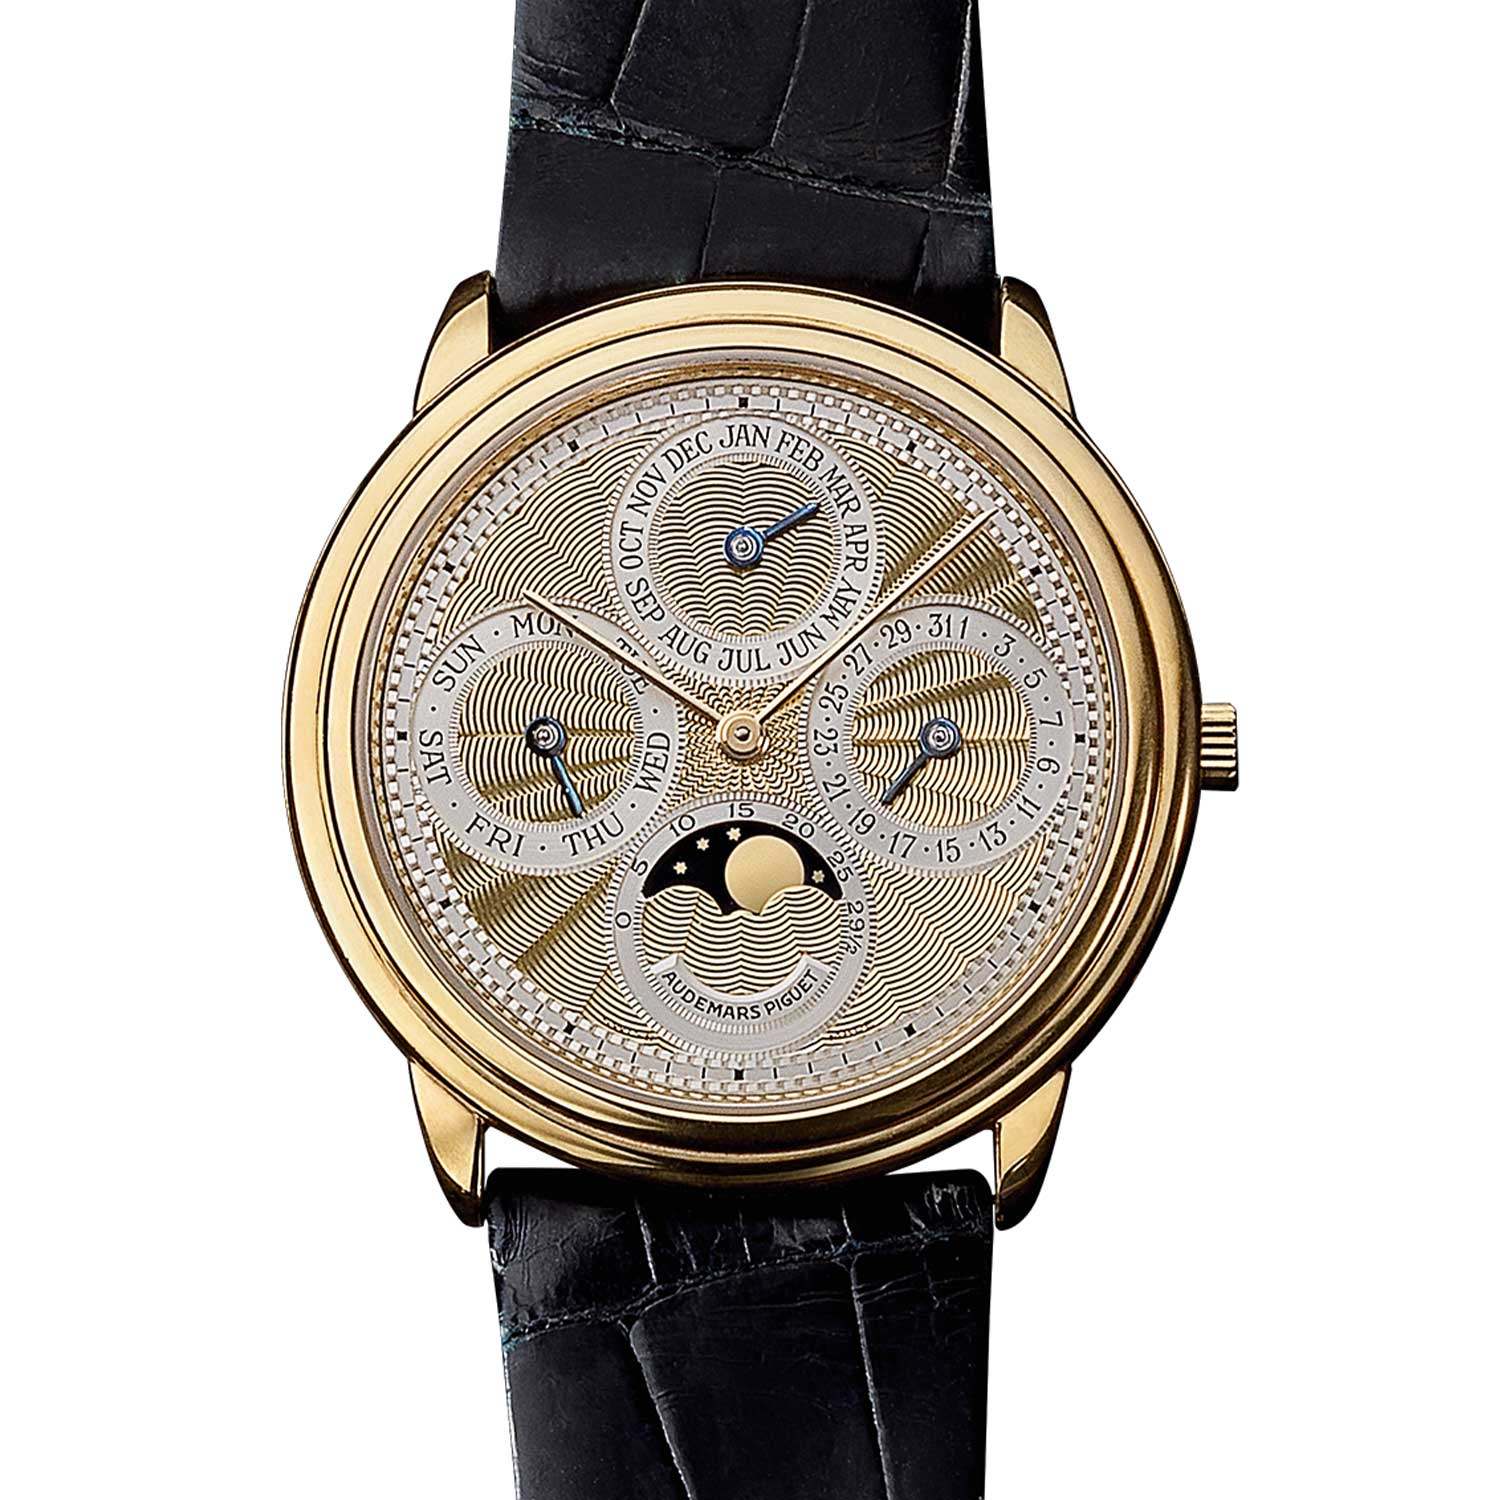 Perpetual calendar with an engine-turned dial. Model 25657BA (1,821 examples, of which 1,309 in yellow gold). Movement No 373937, case No D7678. Calibre 2120/2800. Movement made in 1992, watch sold in 1993. Audemars Piguet Heritage Collection, Inv. 1589.